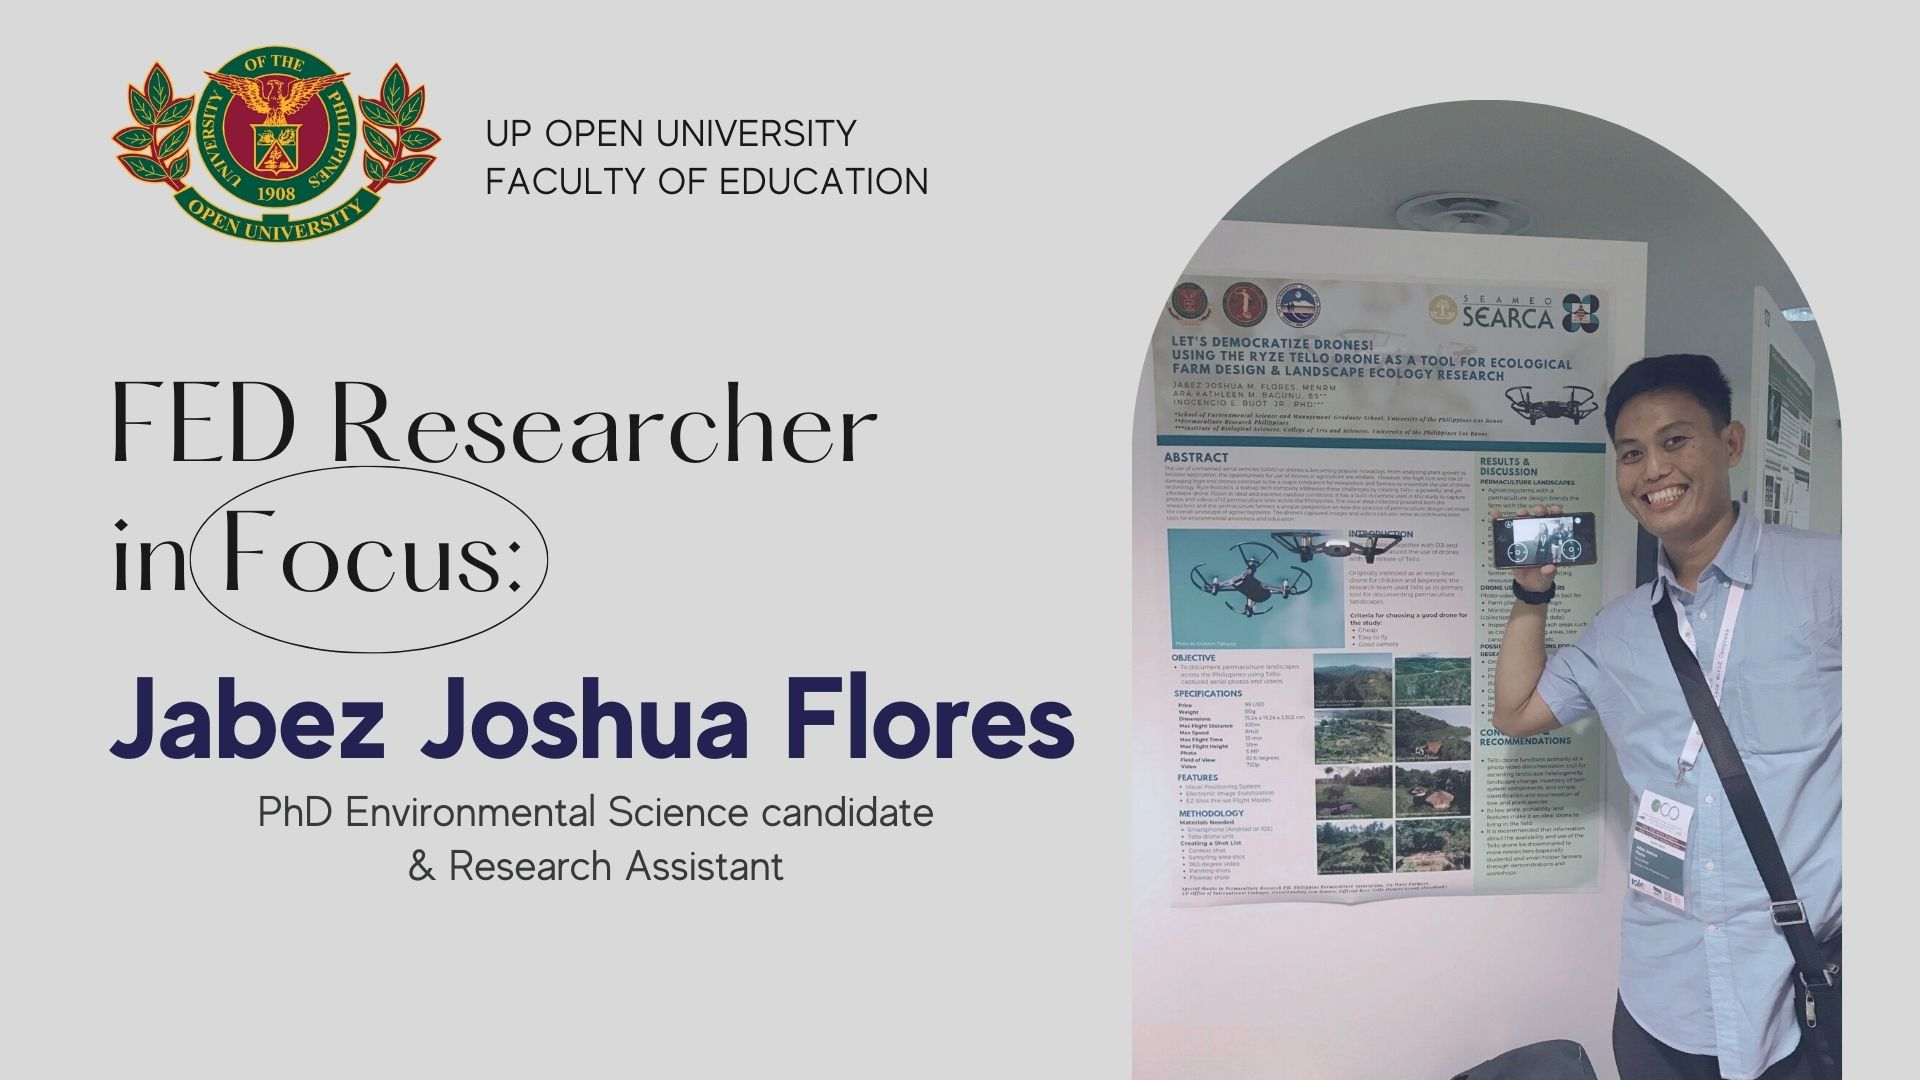 FEd Researcher in Focus: Jabez Joshua Flores